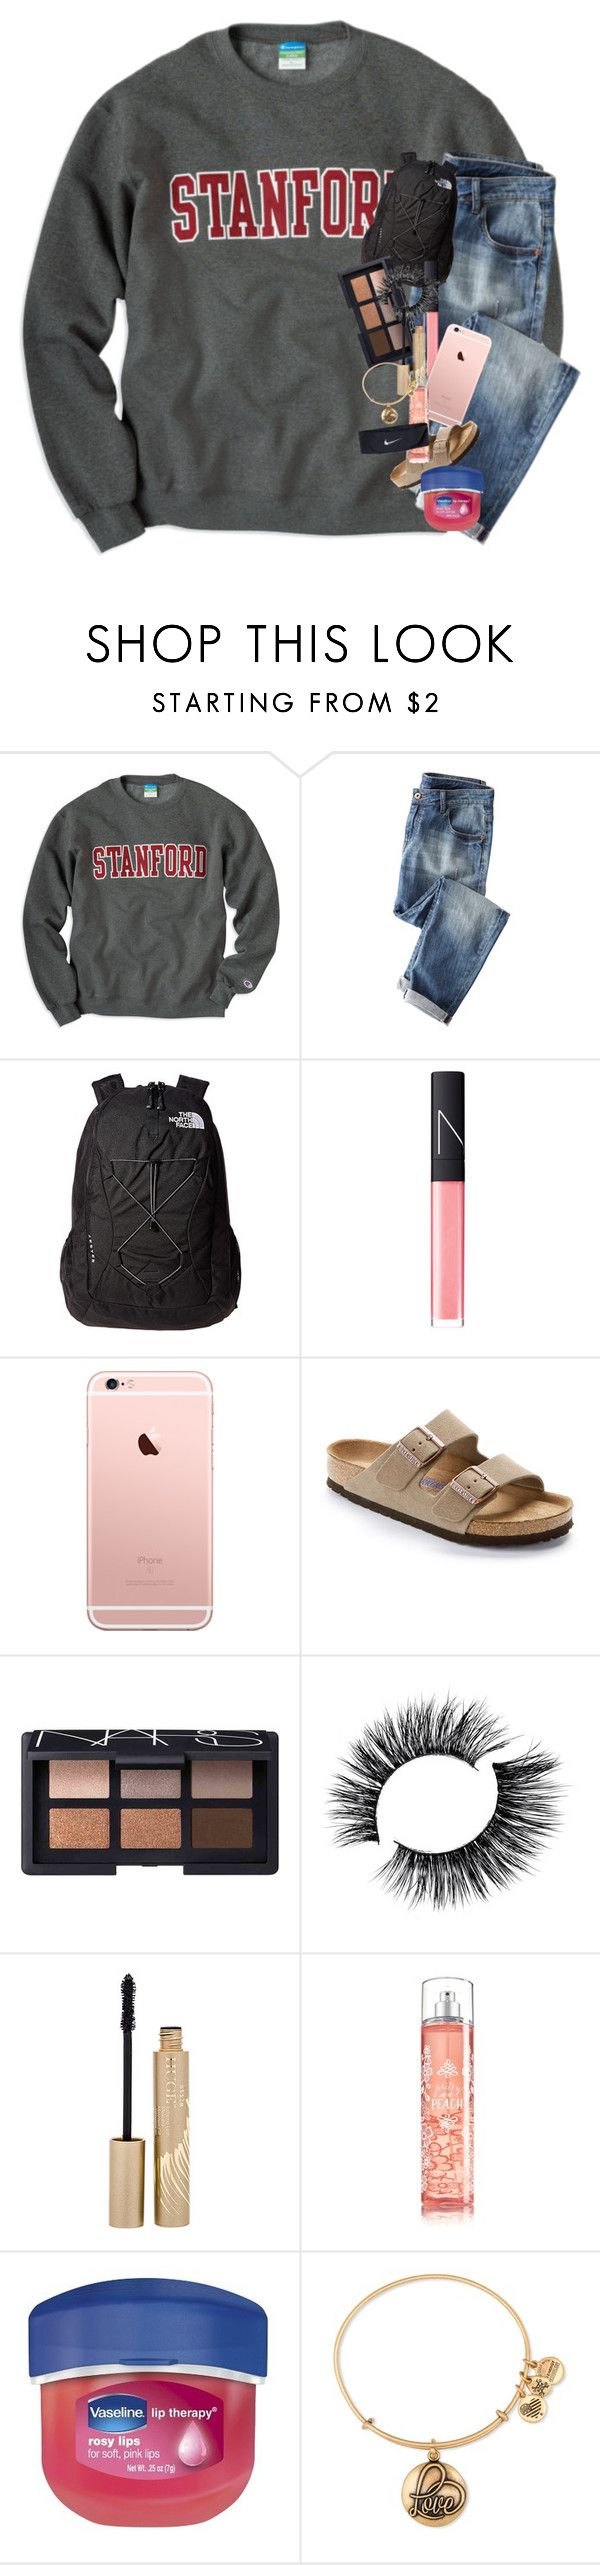 """holy inactivity  ((sorry!!!! i just started school this week))"" by kendallmichele ❤ liked on Polyvore featuring The North Face, NARS Cosmetics, Birkenstock, Stila, Therapy, Alex and Ani and NIKE"